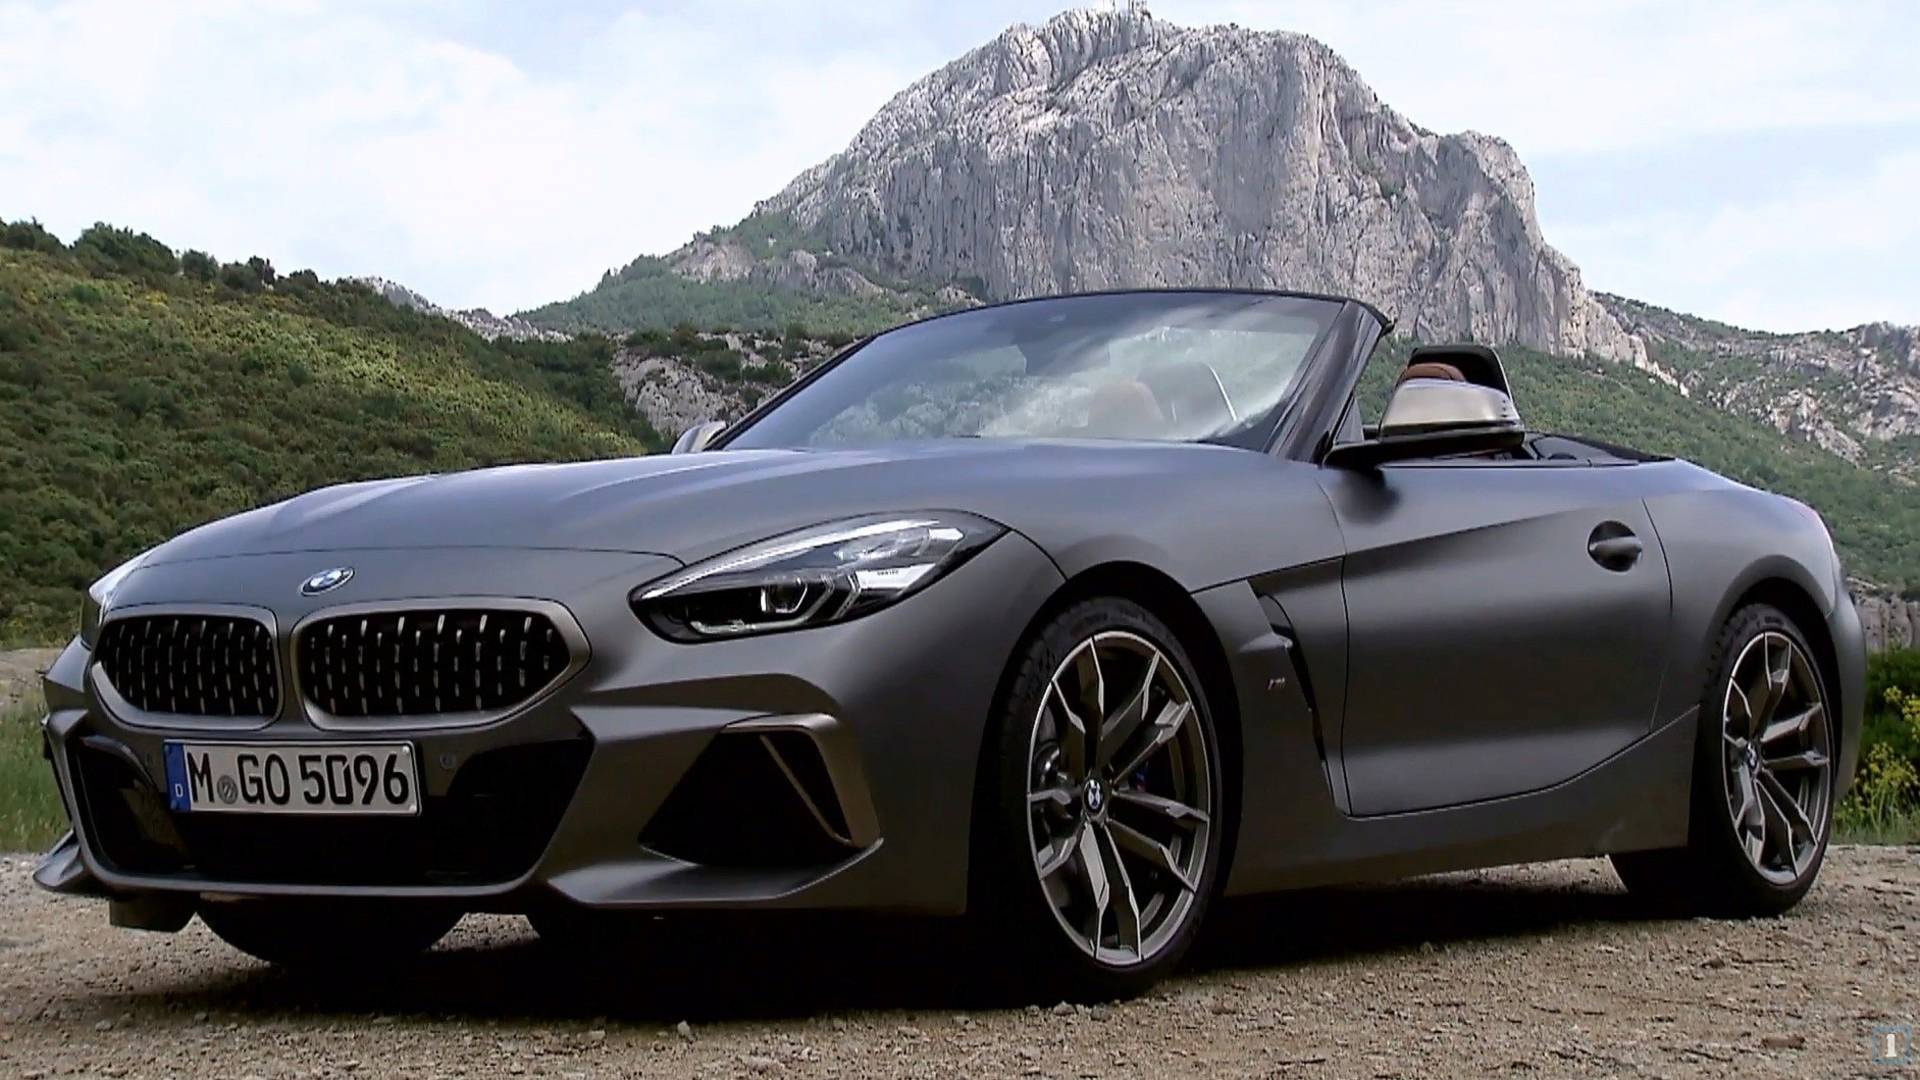 67 The Best 2019 BMW Z4 Roadster Redesign and Concept